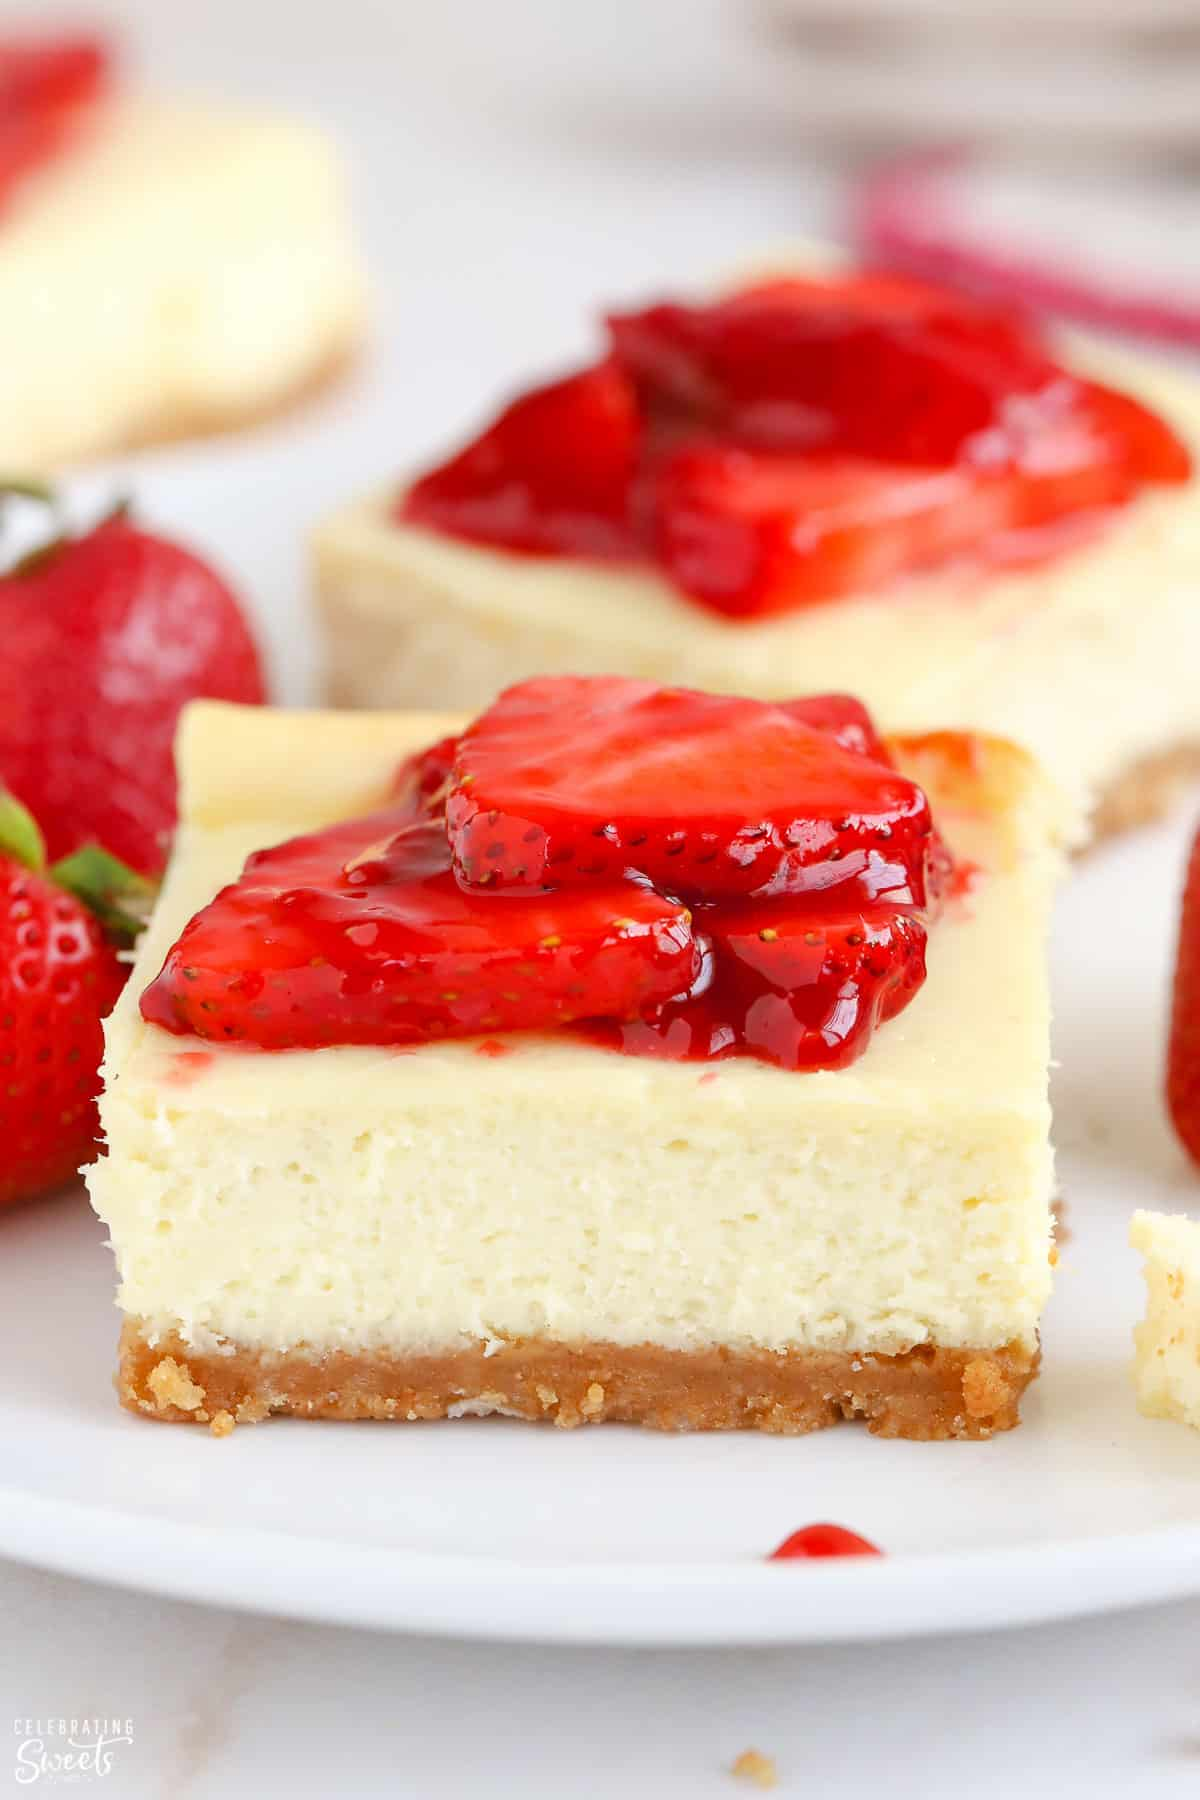 Cheesecake bar topped with strawberries